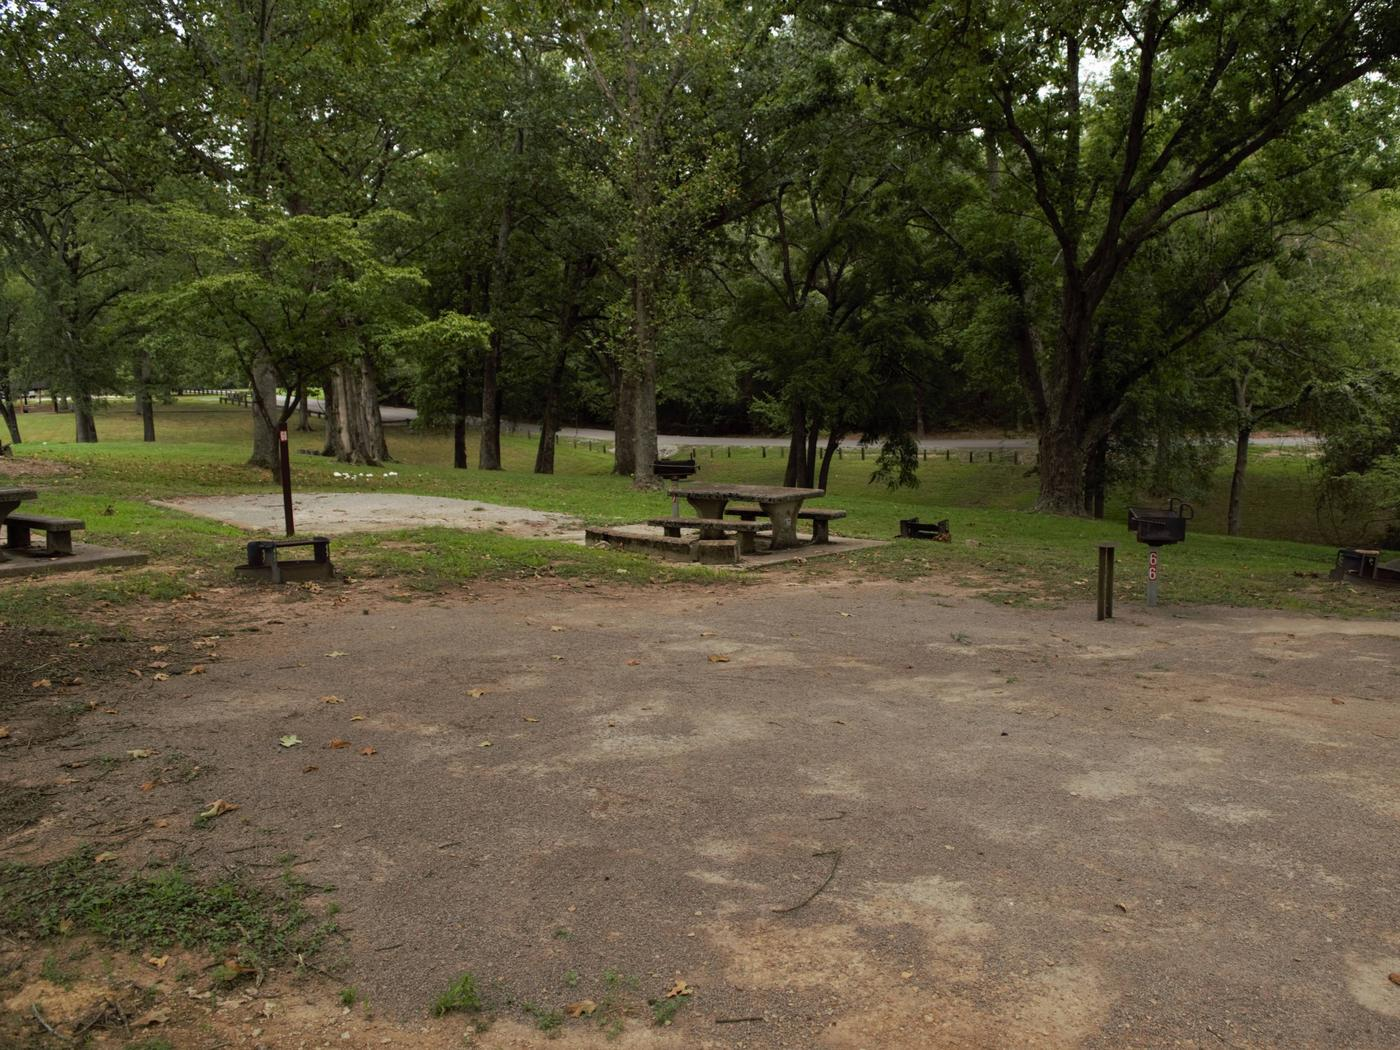 WILLOW GROVE CAMPGROUND SITE #67